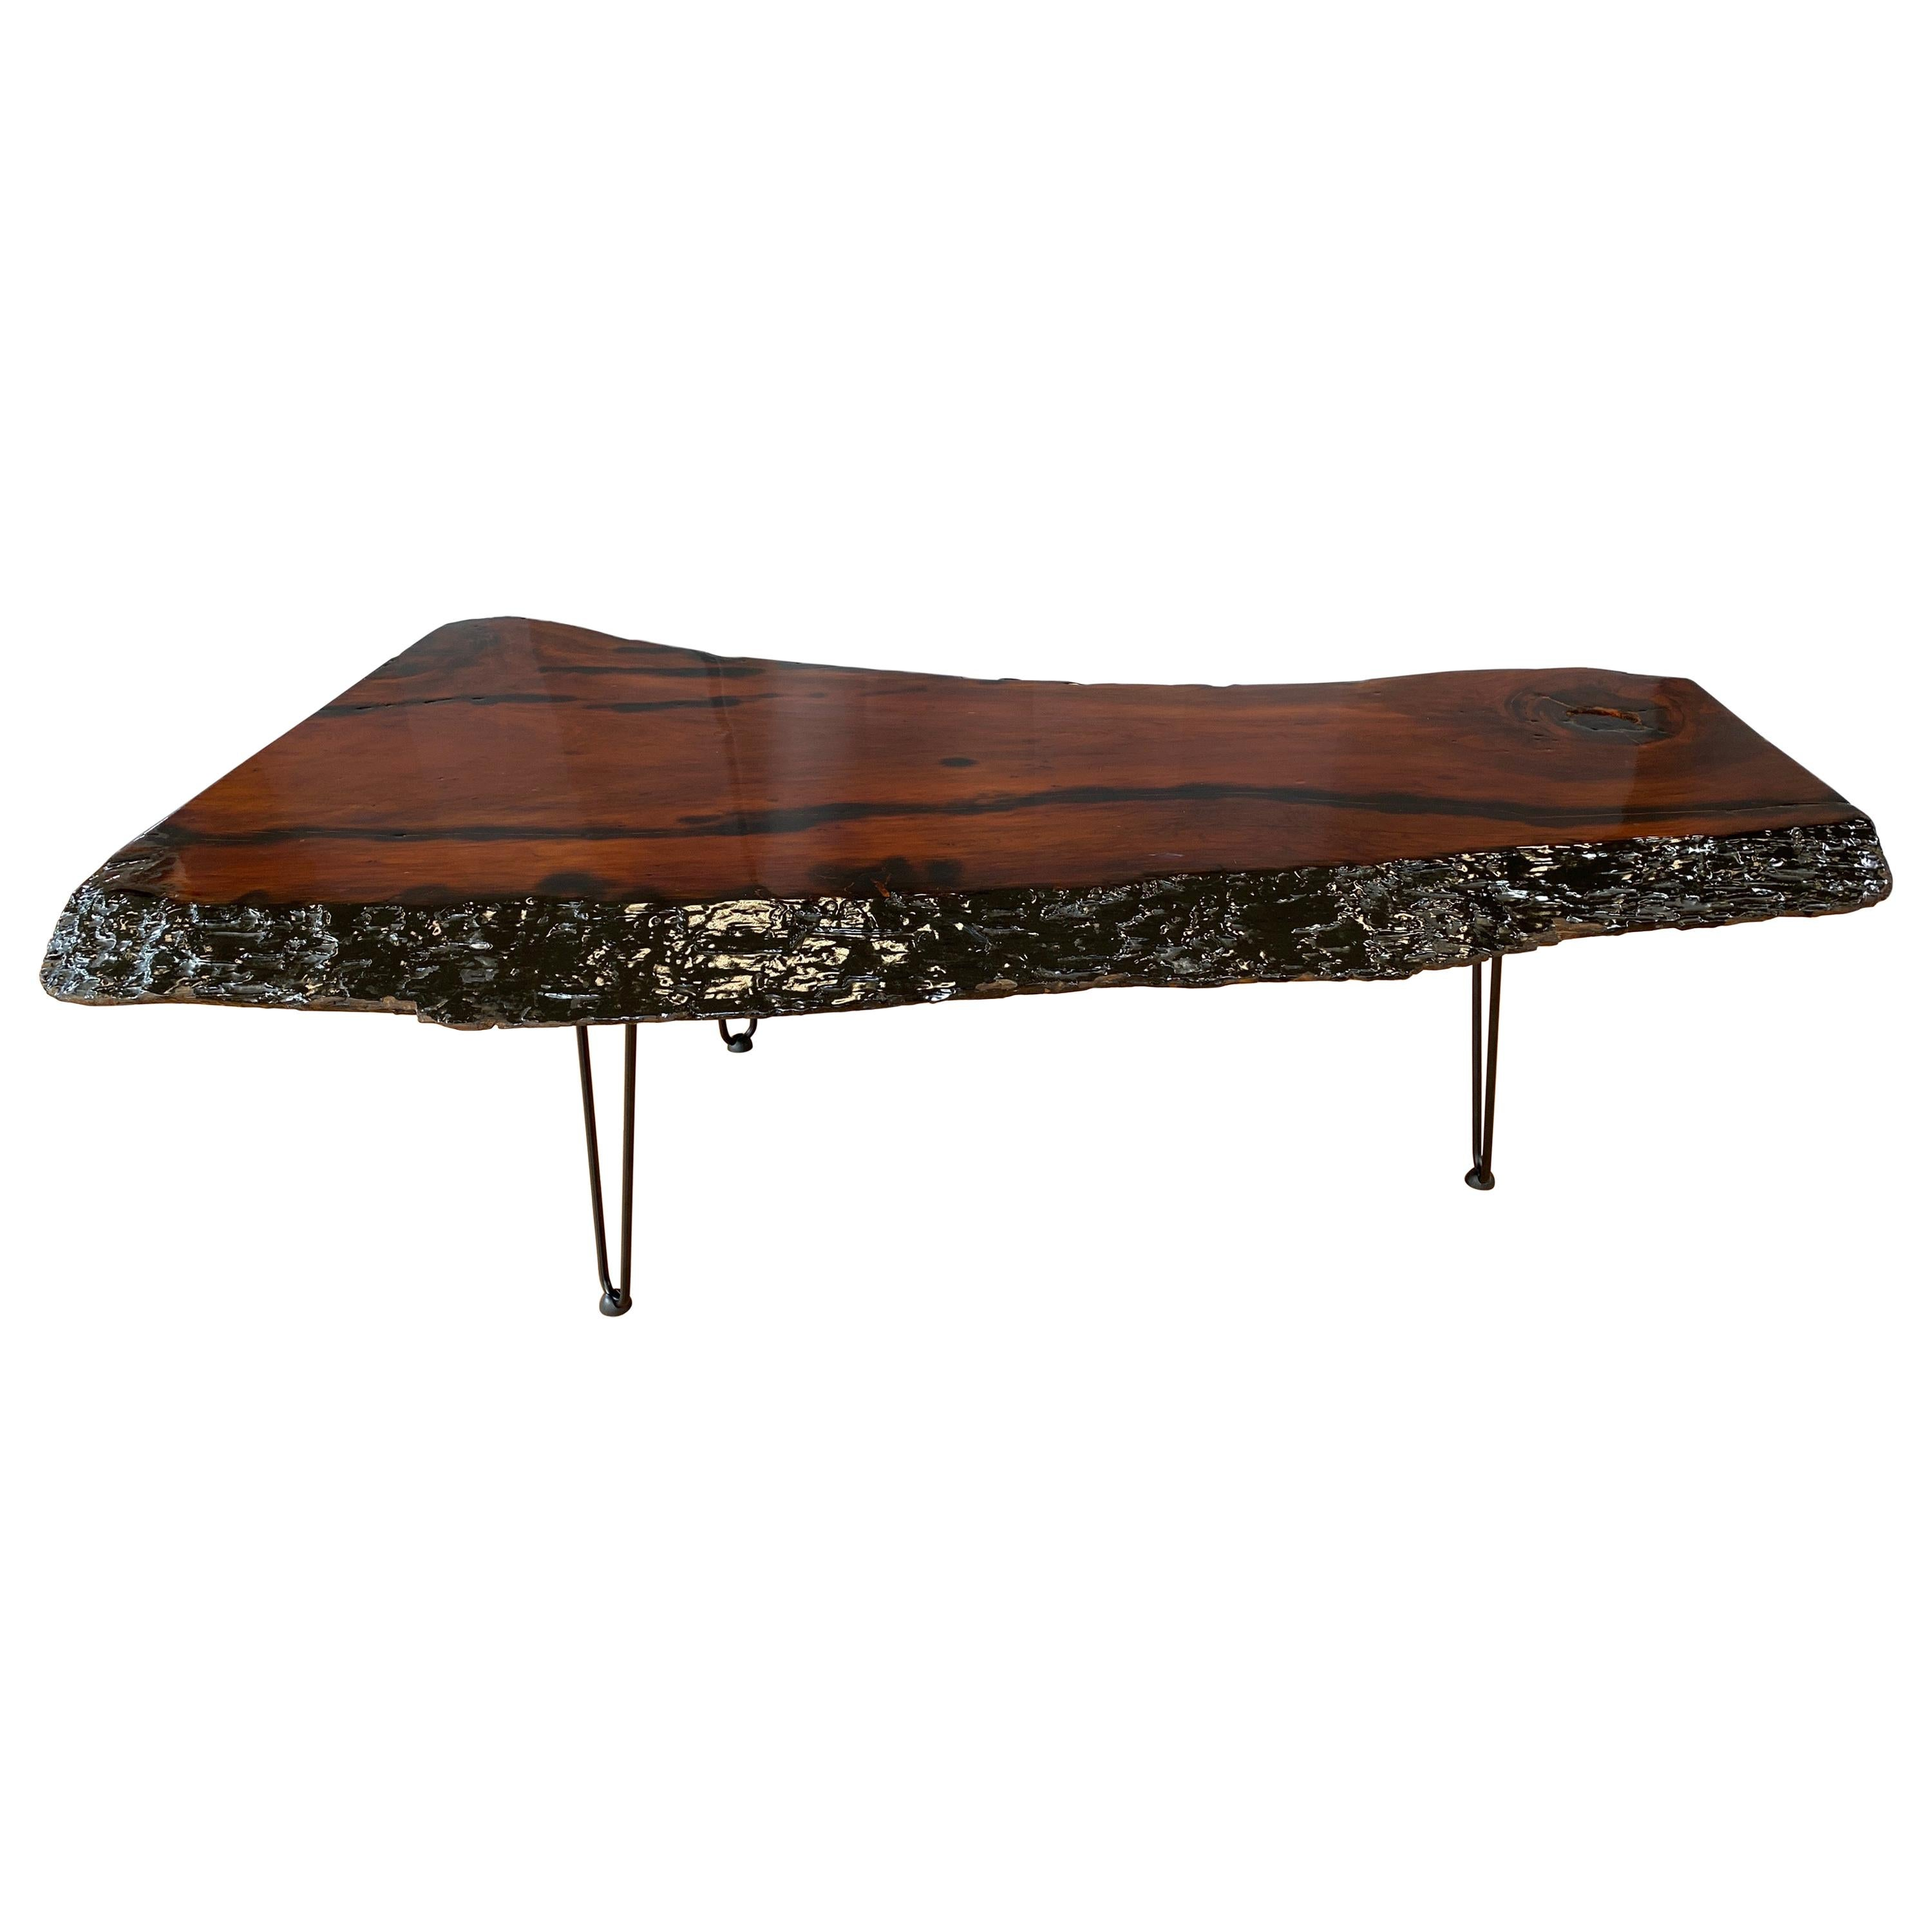 Large Live Edge Redwood Slab Coffee Table on Hairpin Legs, 1970s